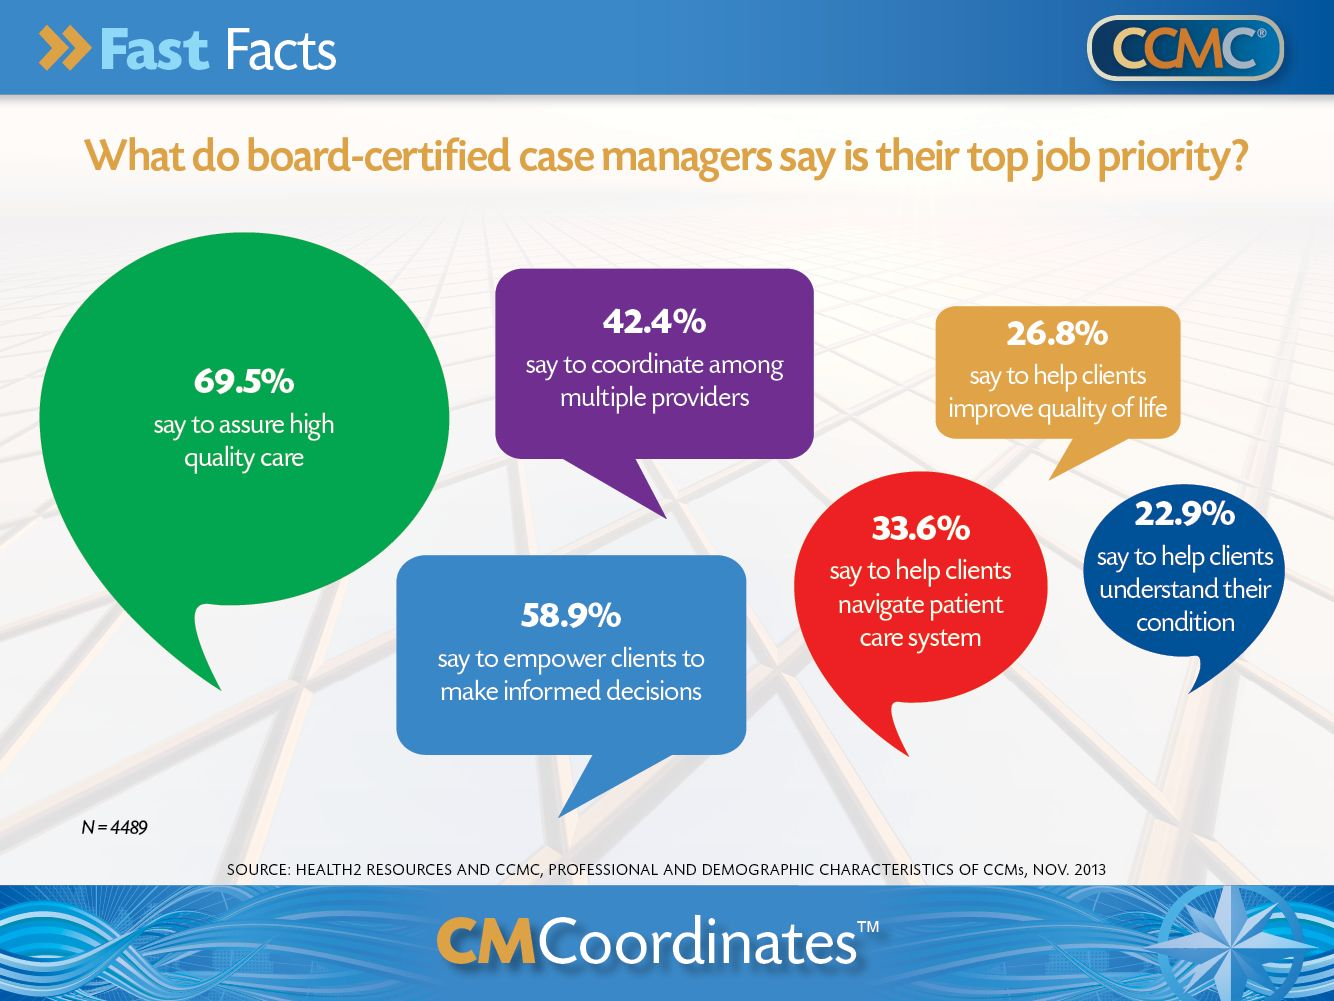 What Are The Top Priorities Of Board Certified Case Managers